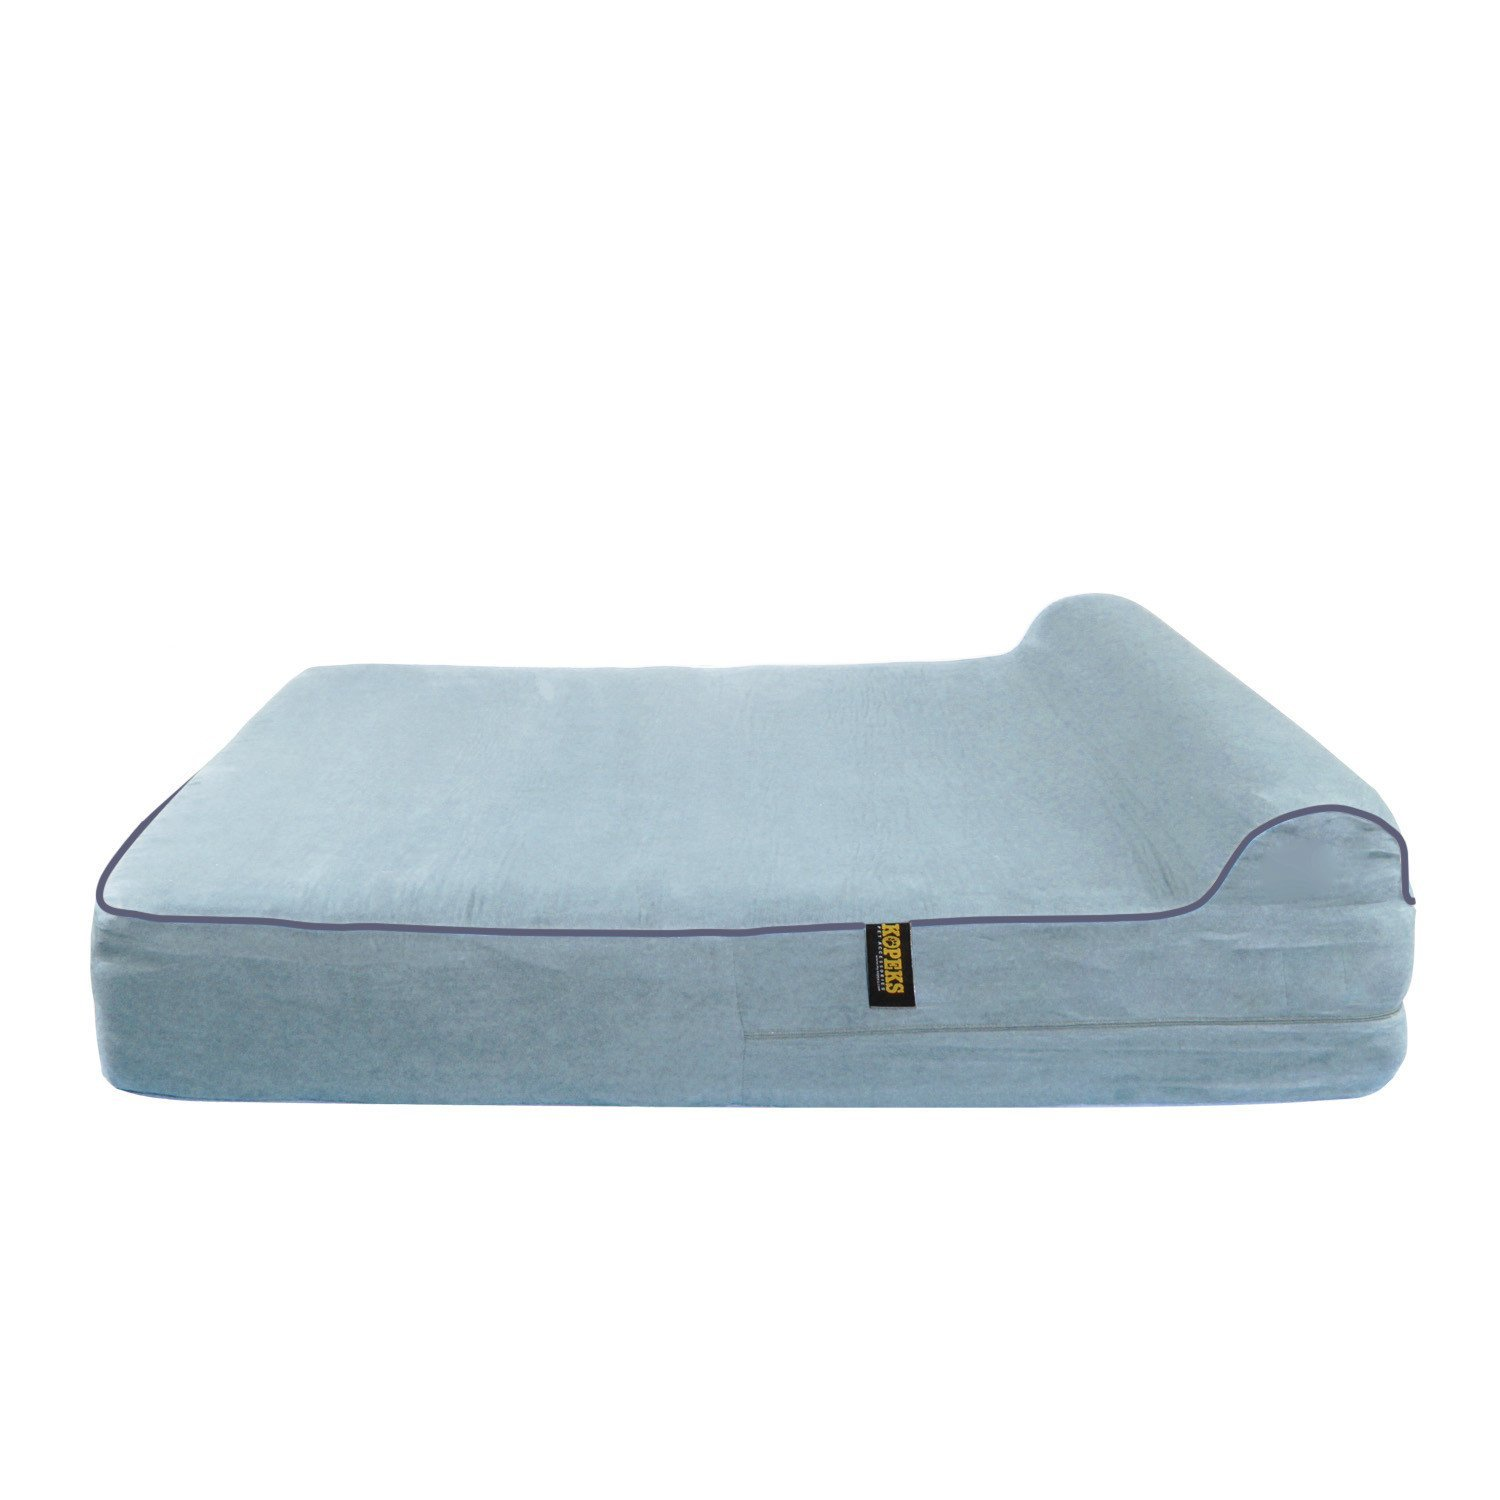 KOPEKS Dog Bed Replacement Cover for Memory Foam Beds - GREY - Large Size